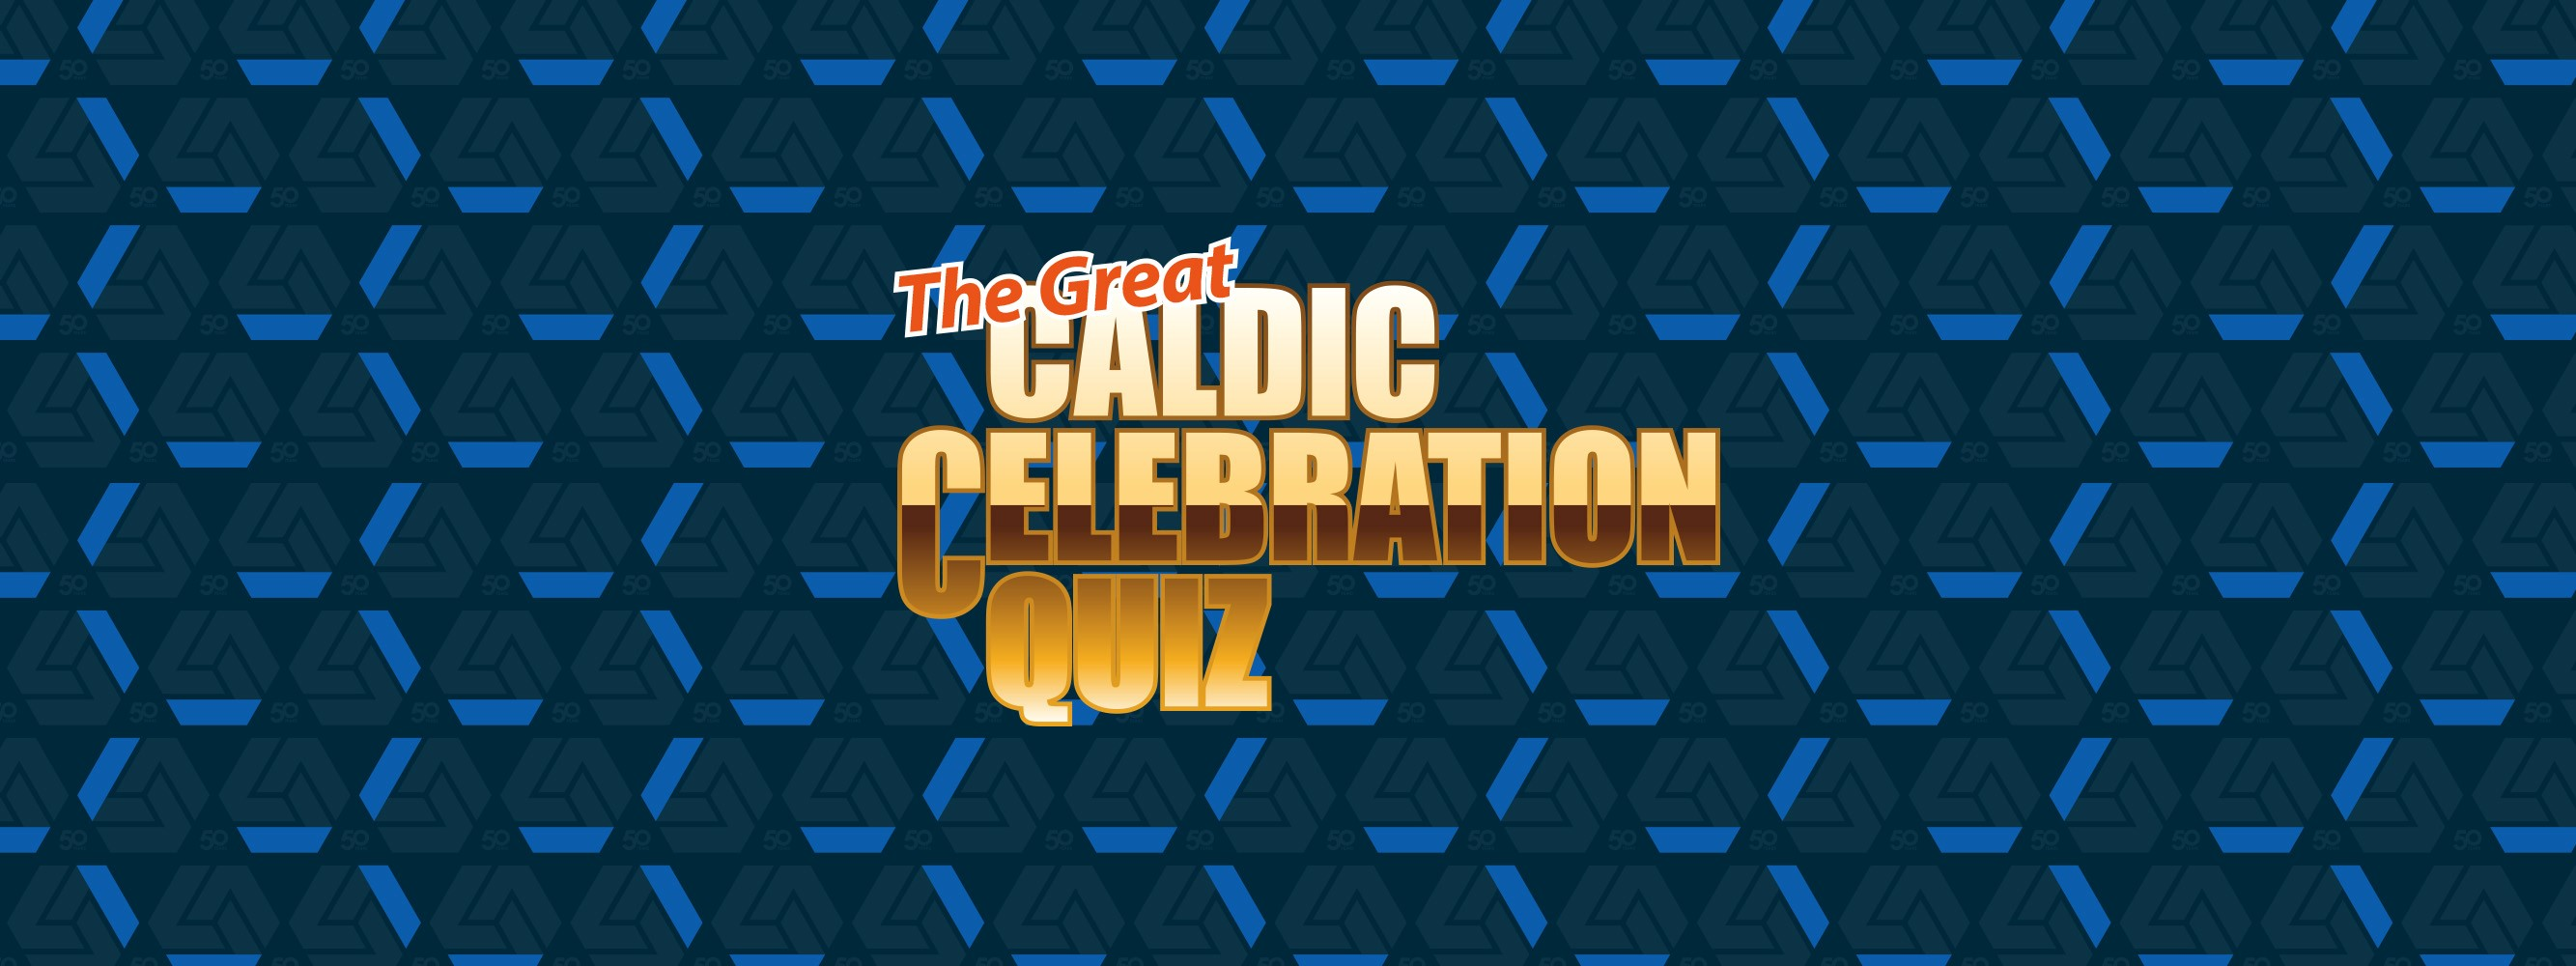 Caldic Celebration Quiz